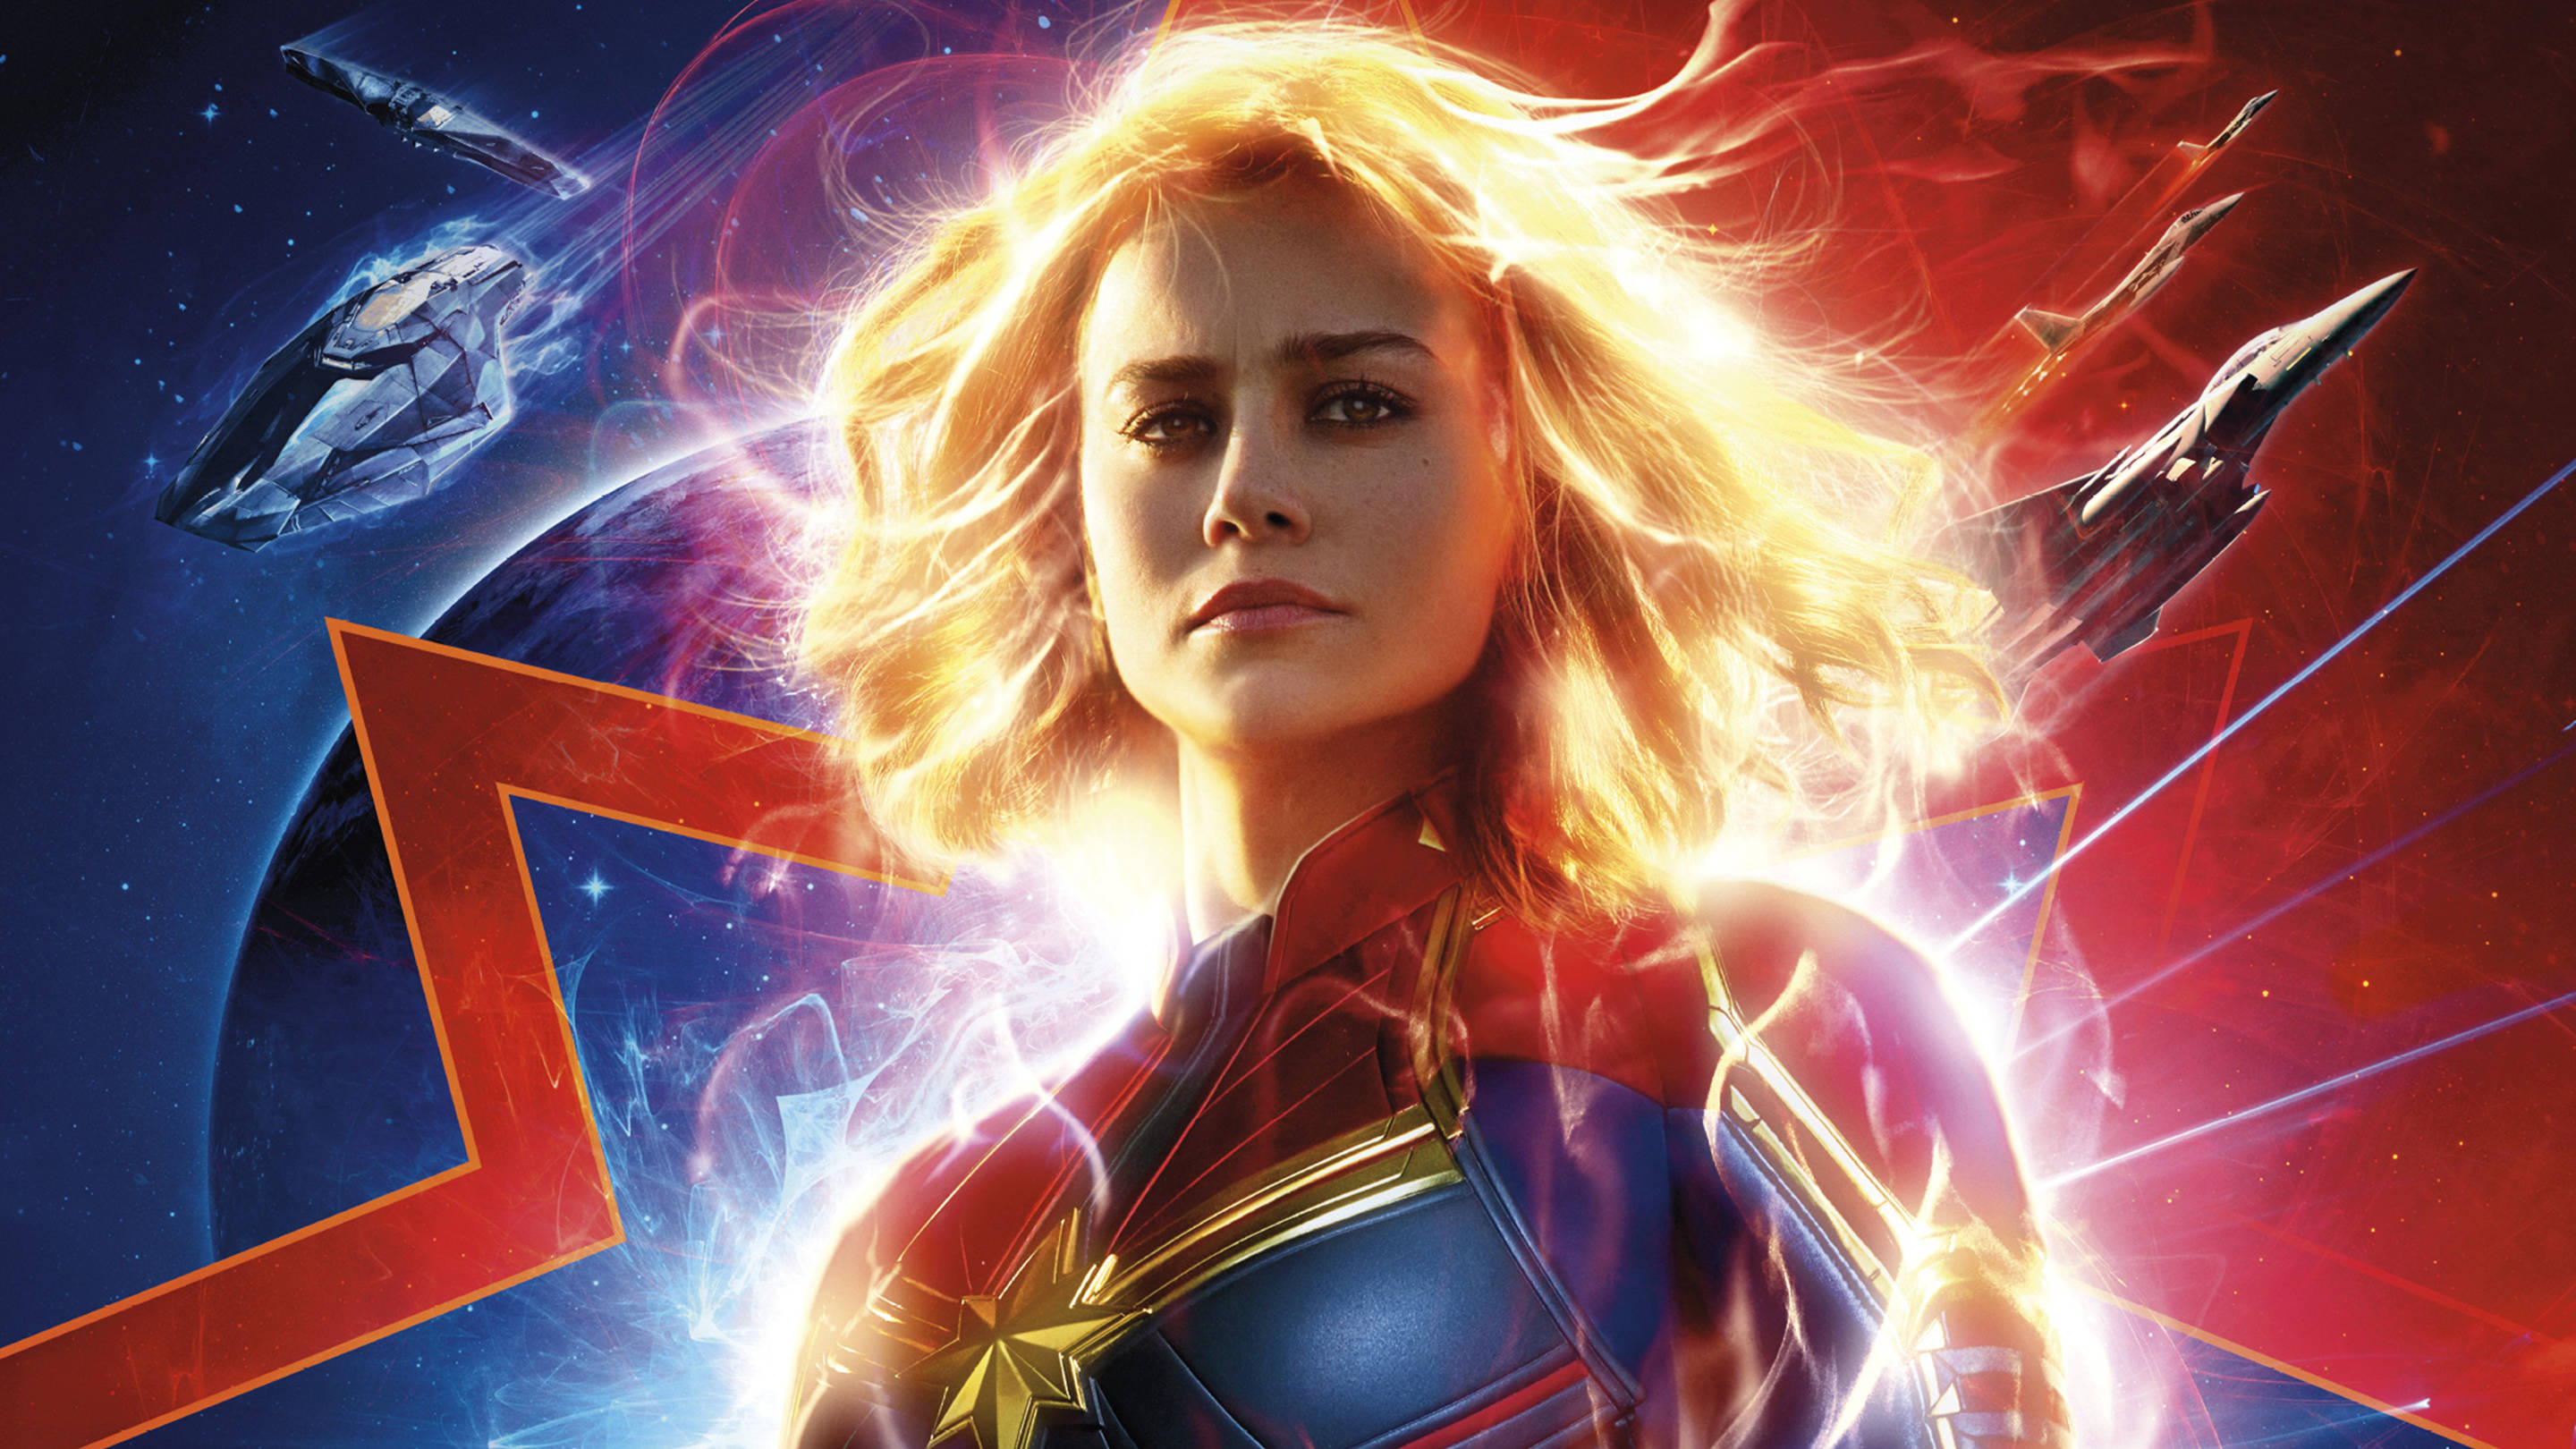 Brie Larson's Captain Marvel